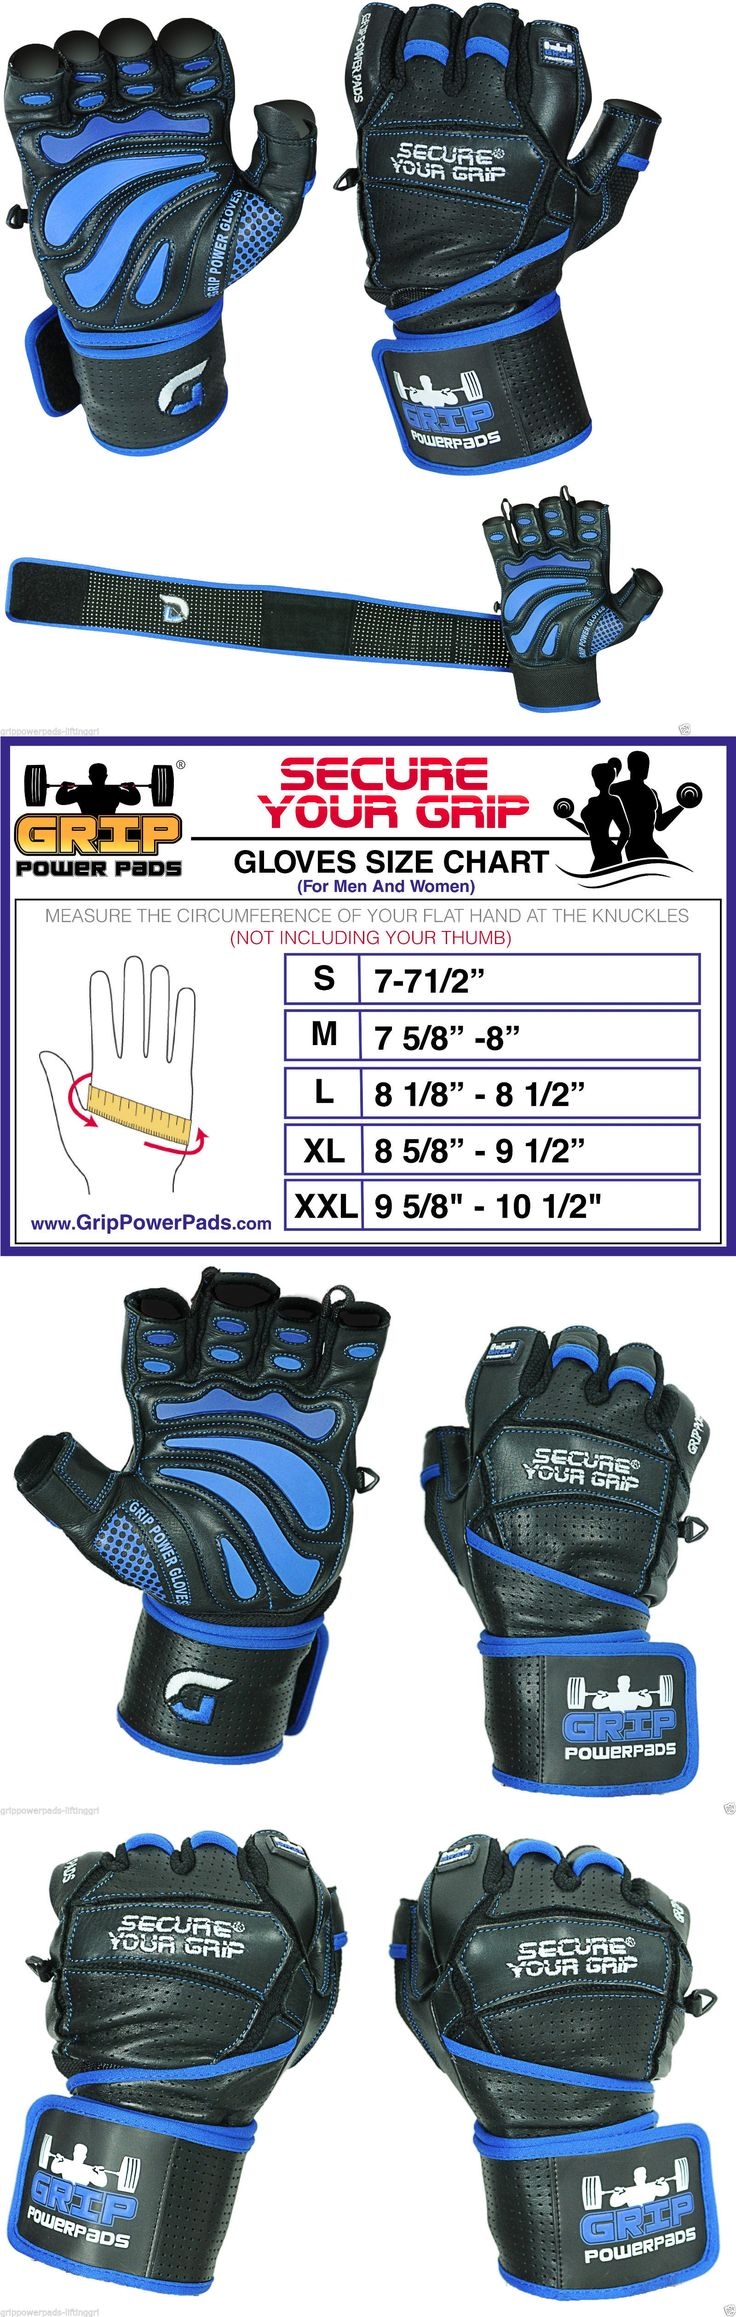 Gloves Straps and Hooks 179820: Gym Gloves Body Building Weightlifting Workout Exercise Wrist Wraps Straps New BUY IT NOW ONLY: $42.95